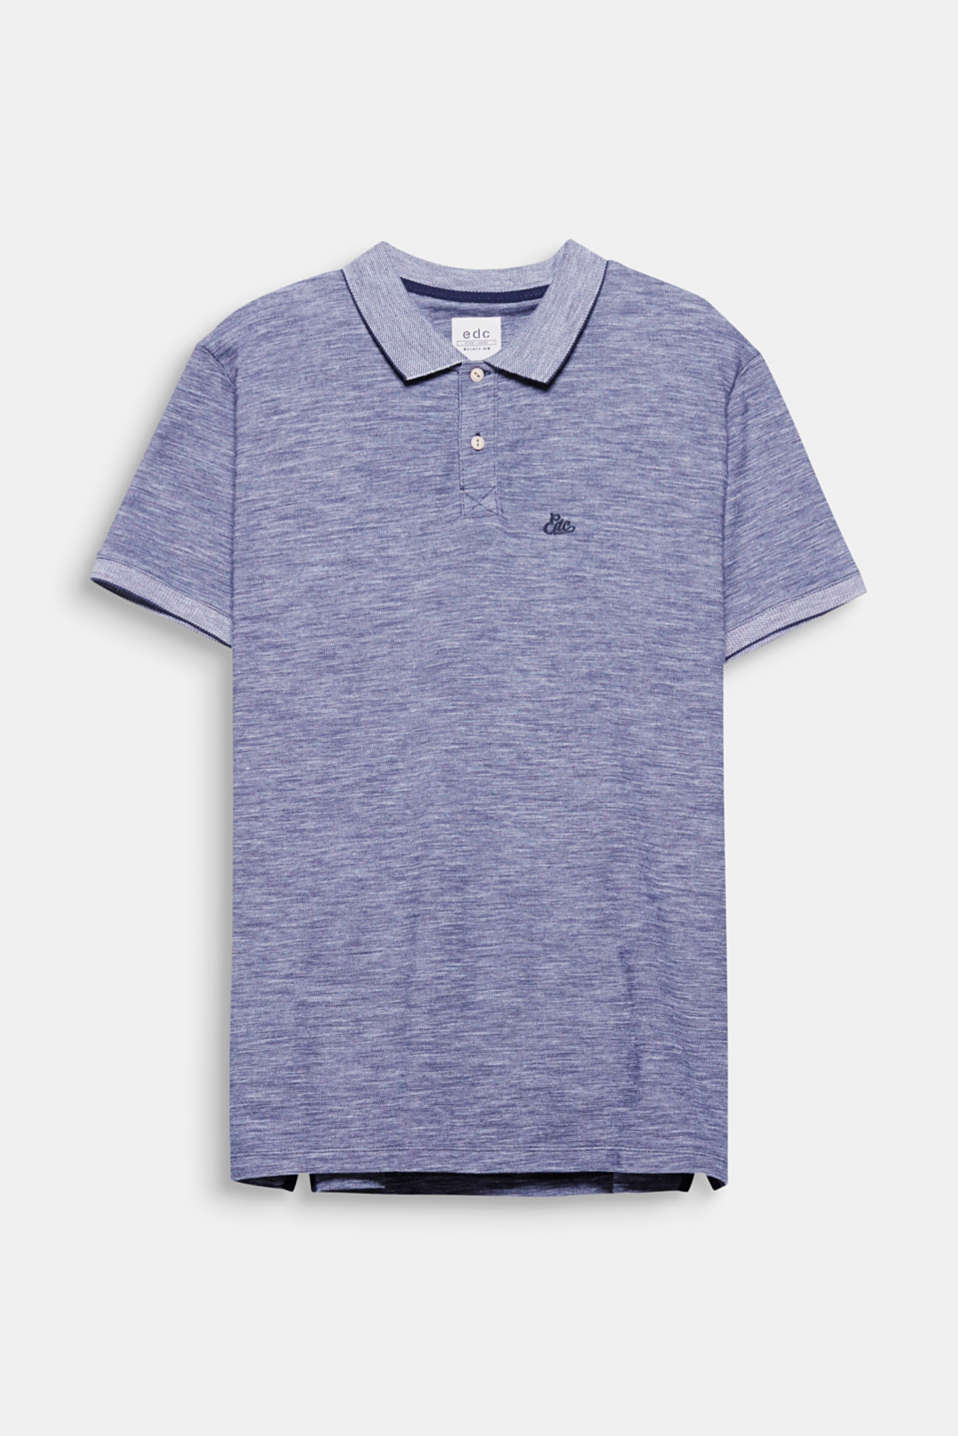 The two-tone look gives this polo shirt its exciting texture.